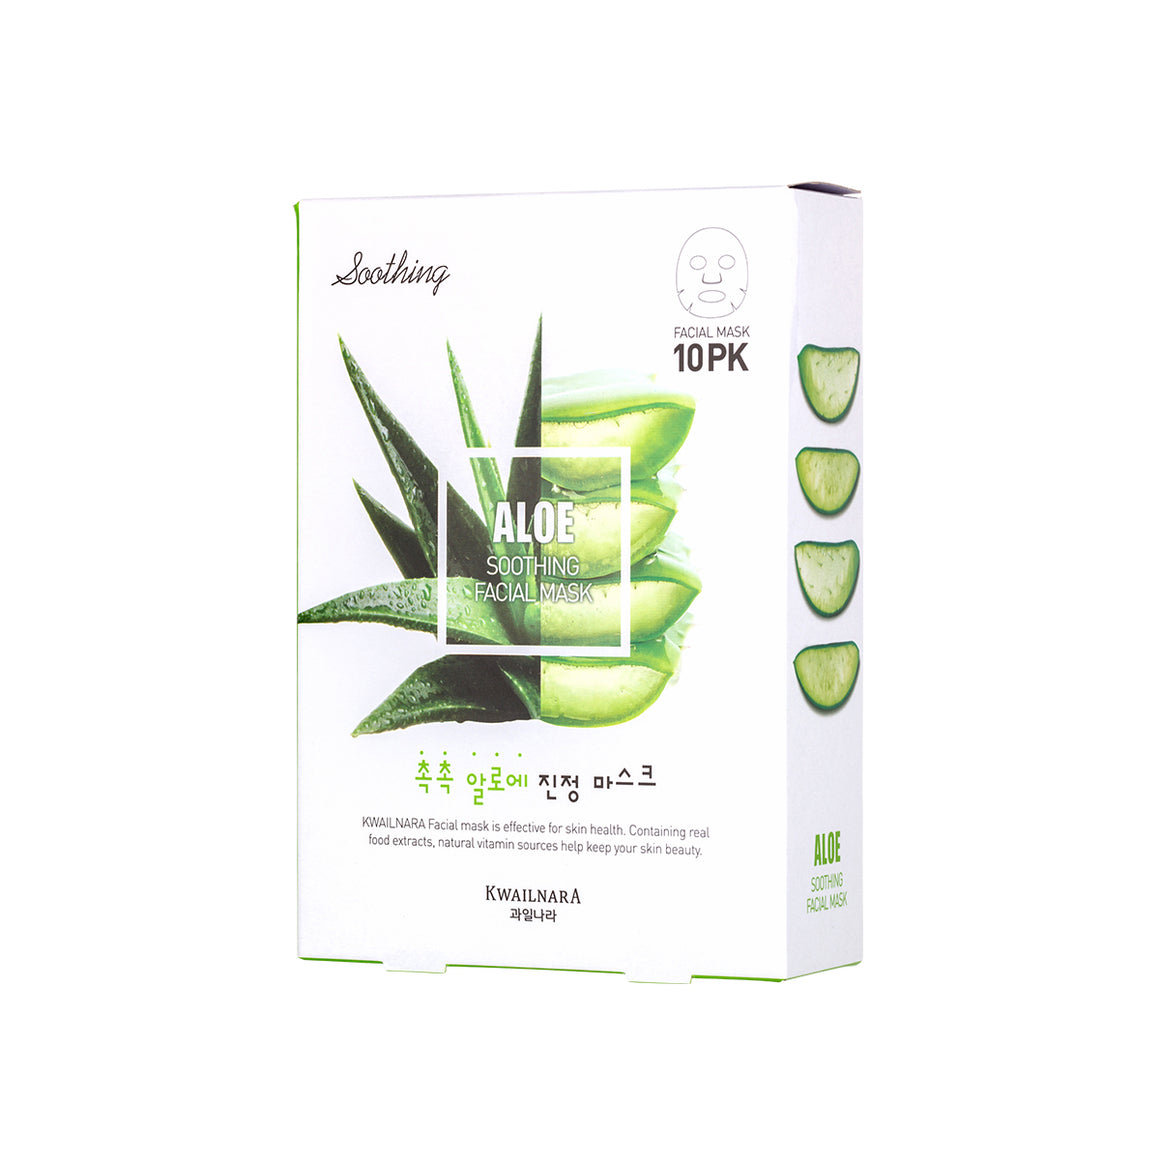 Soothing Aloe Mask